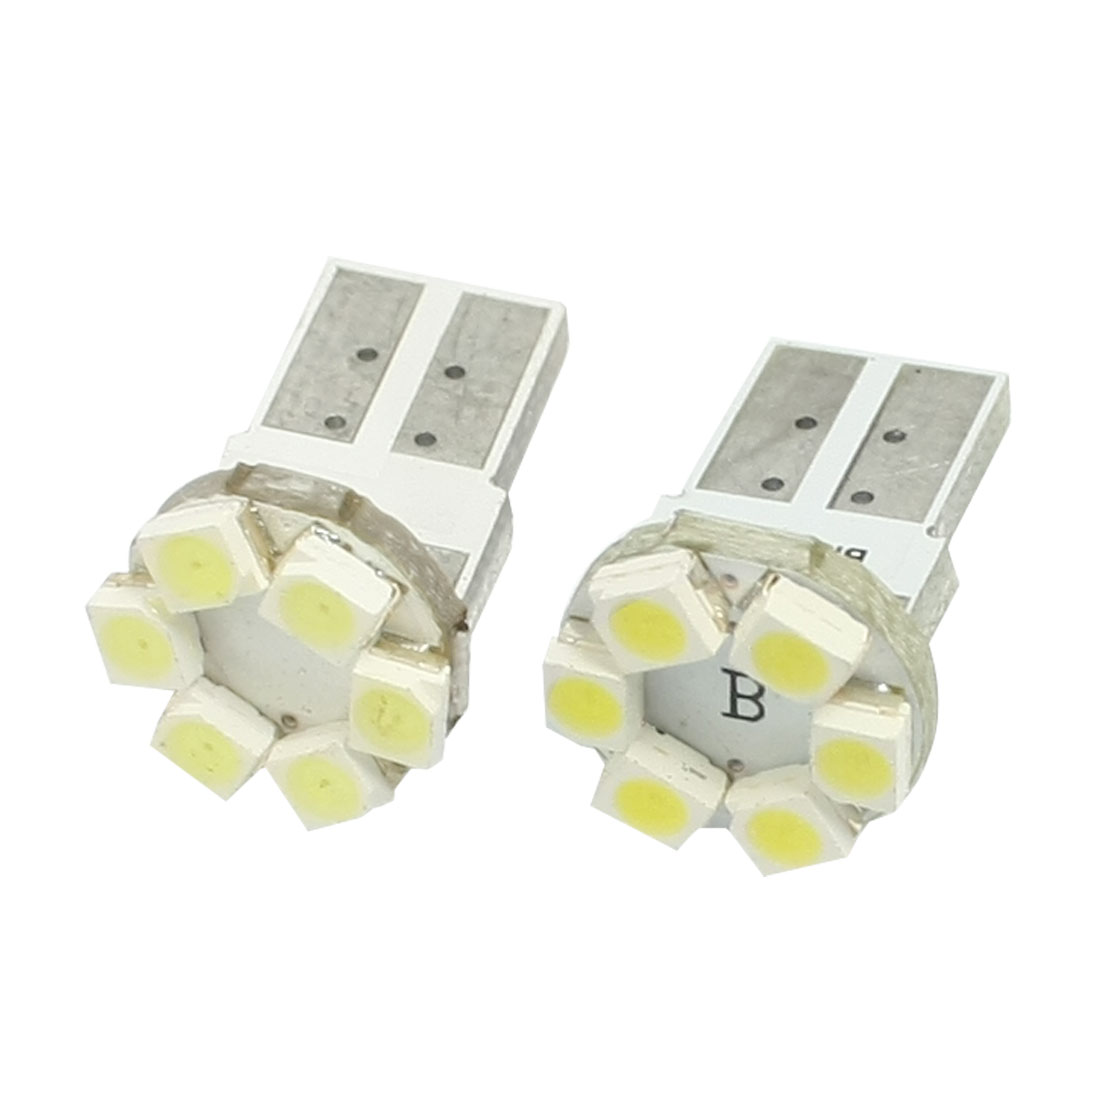 2 Pcs T10 W5W 194 168 Car White Canbus 1210 SMD 6 LED Light Bulb Lamp